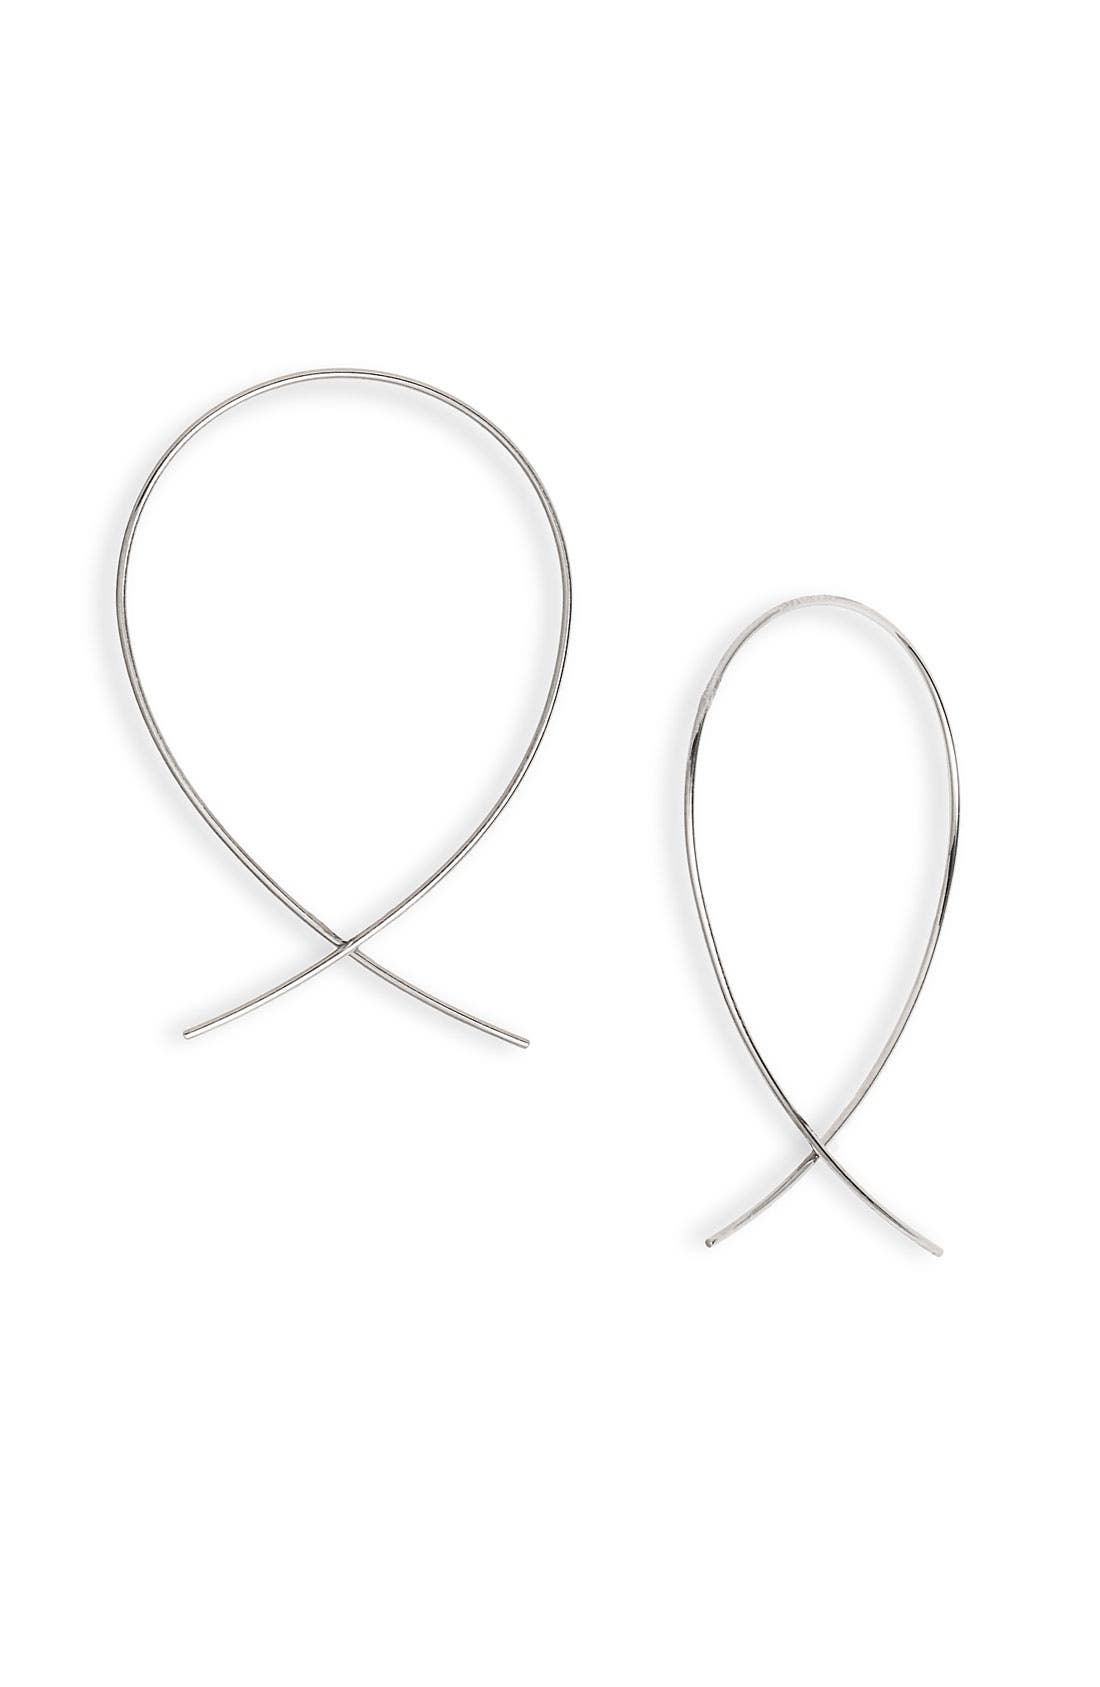 'Upside Down' Small Hoop Earrings,                         Main,                         color, White Gold